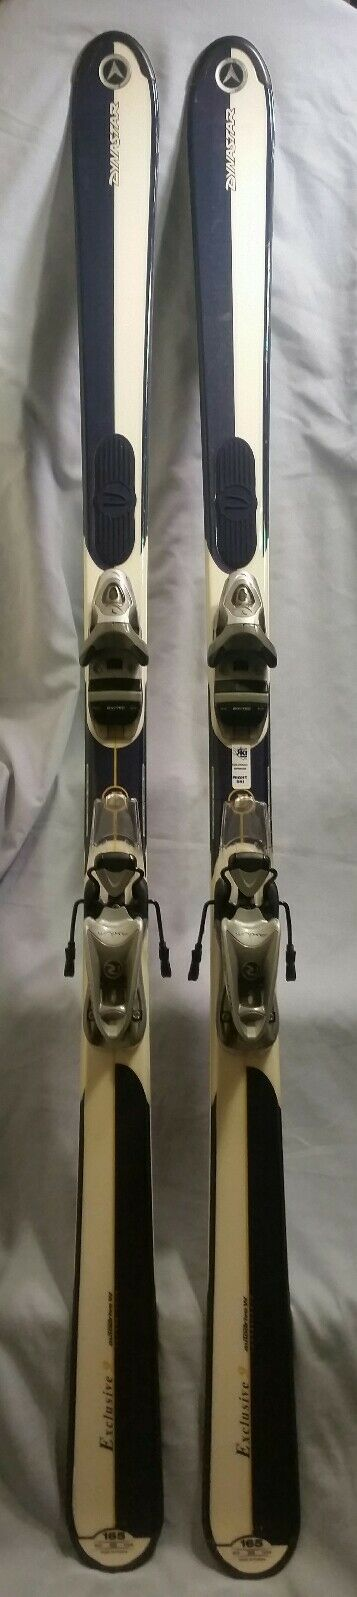 DYNASTAR Exclusive 9 Autodrive W 165cm Women's All-Mtn Skis w Axium Bindings